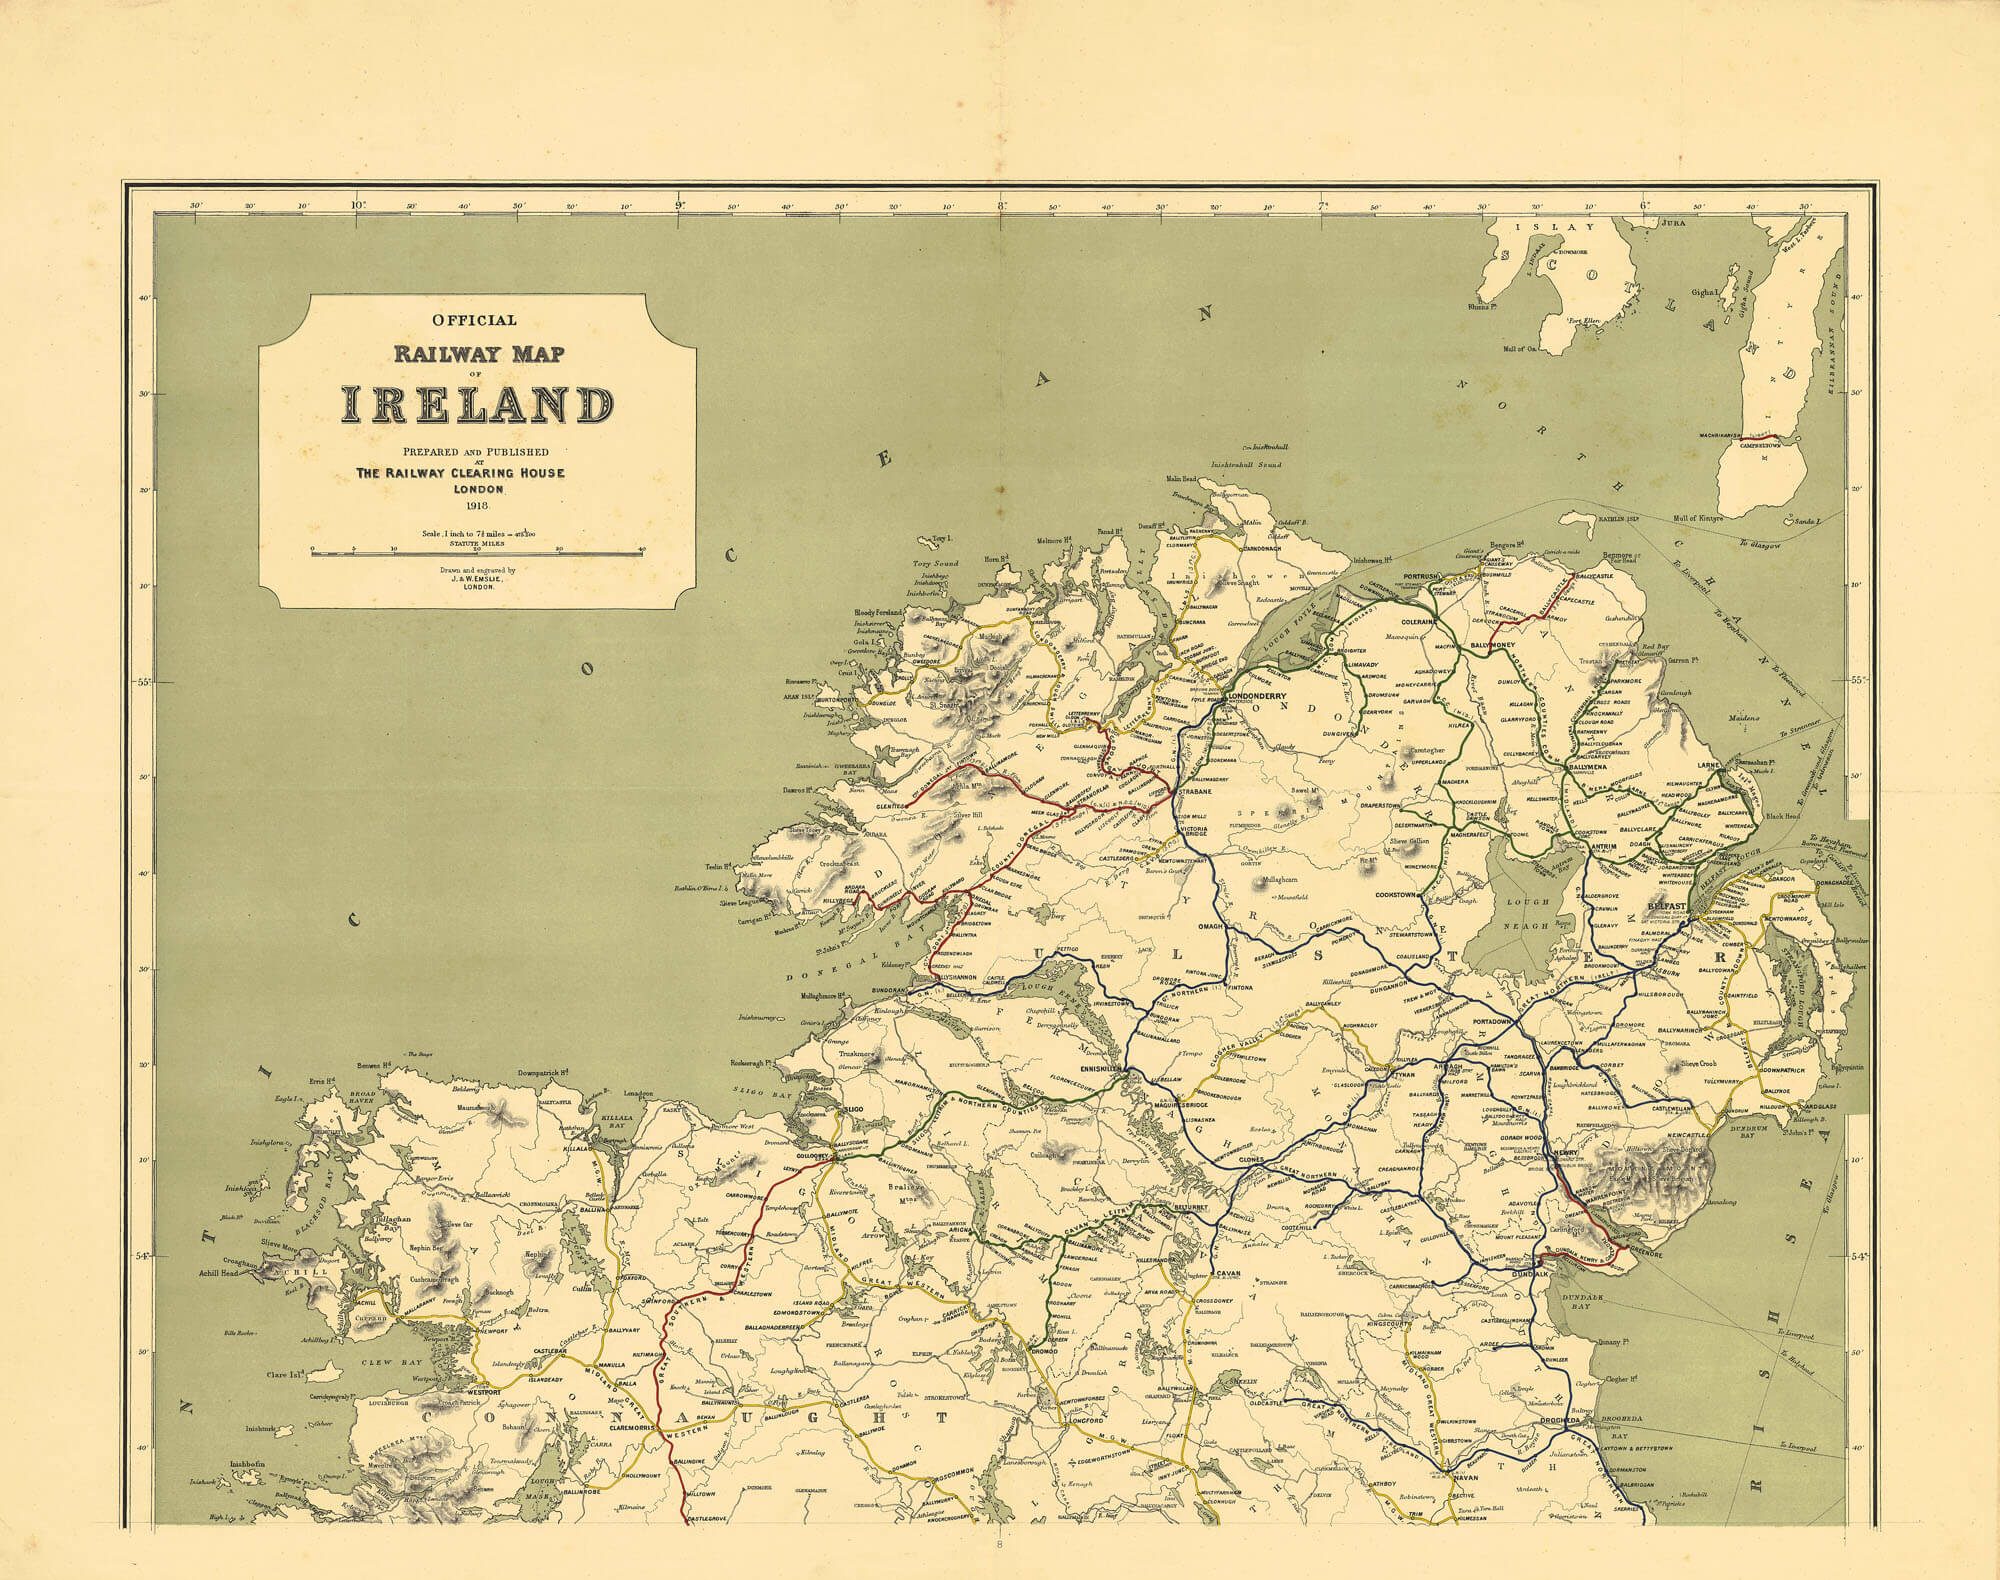 Ireland Maps Of Railways  L Brown Collection - Railway map usa 1890